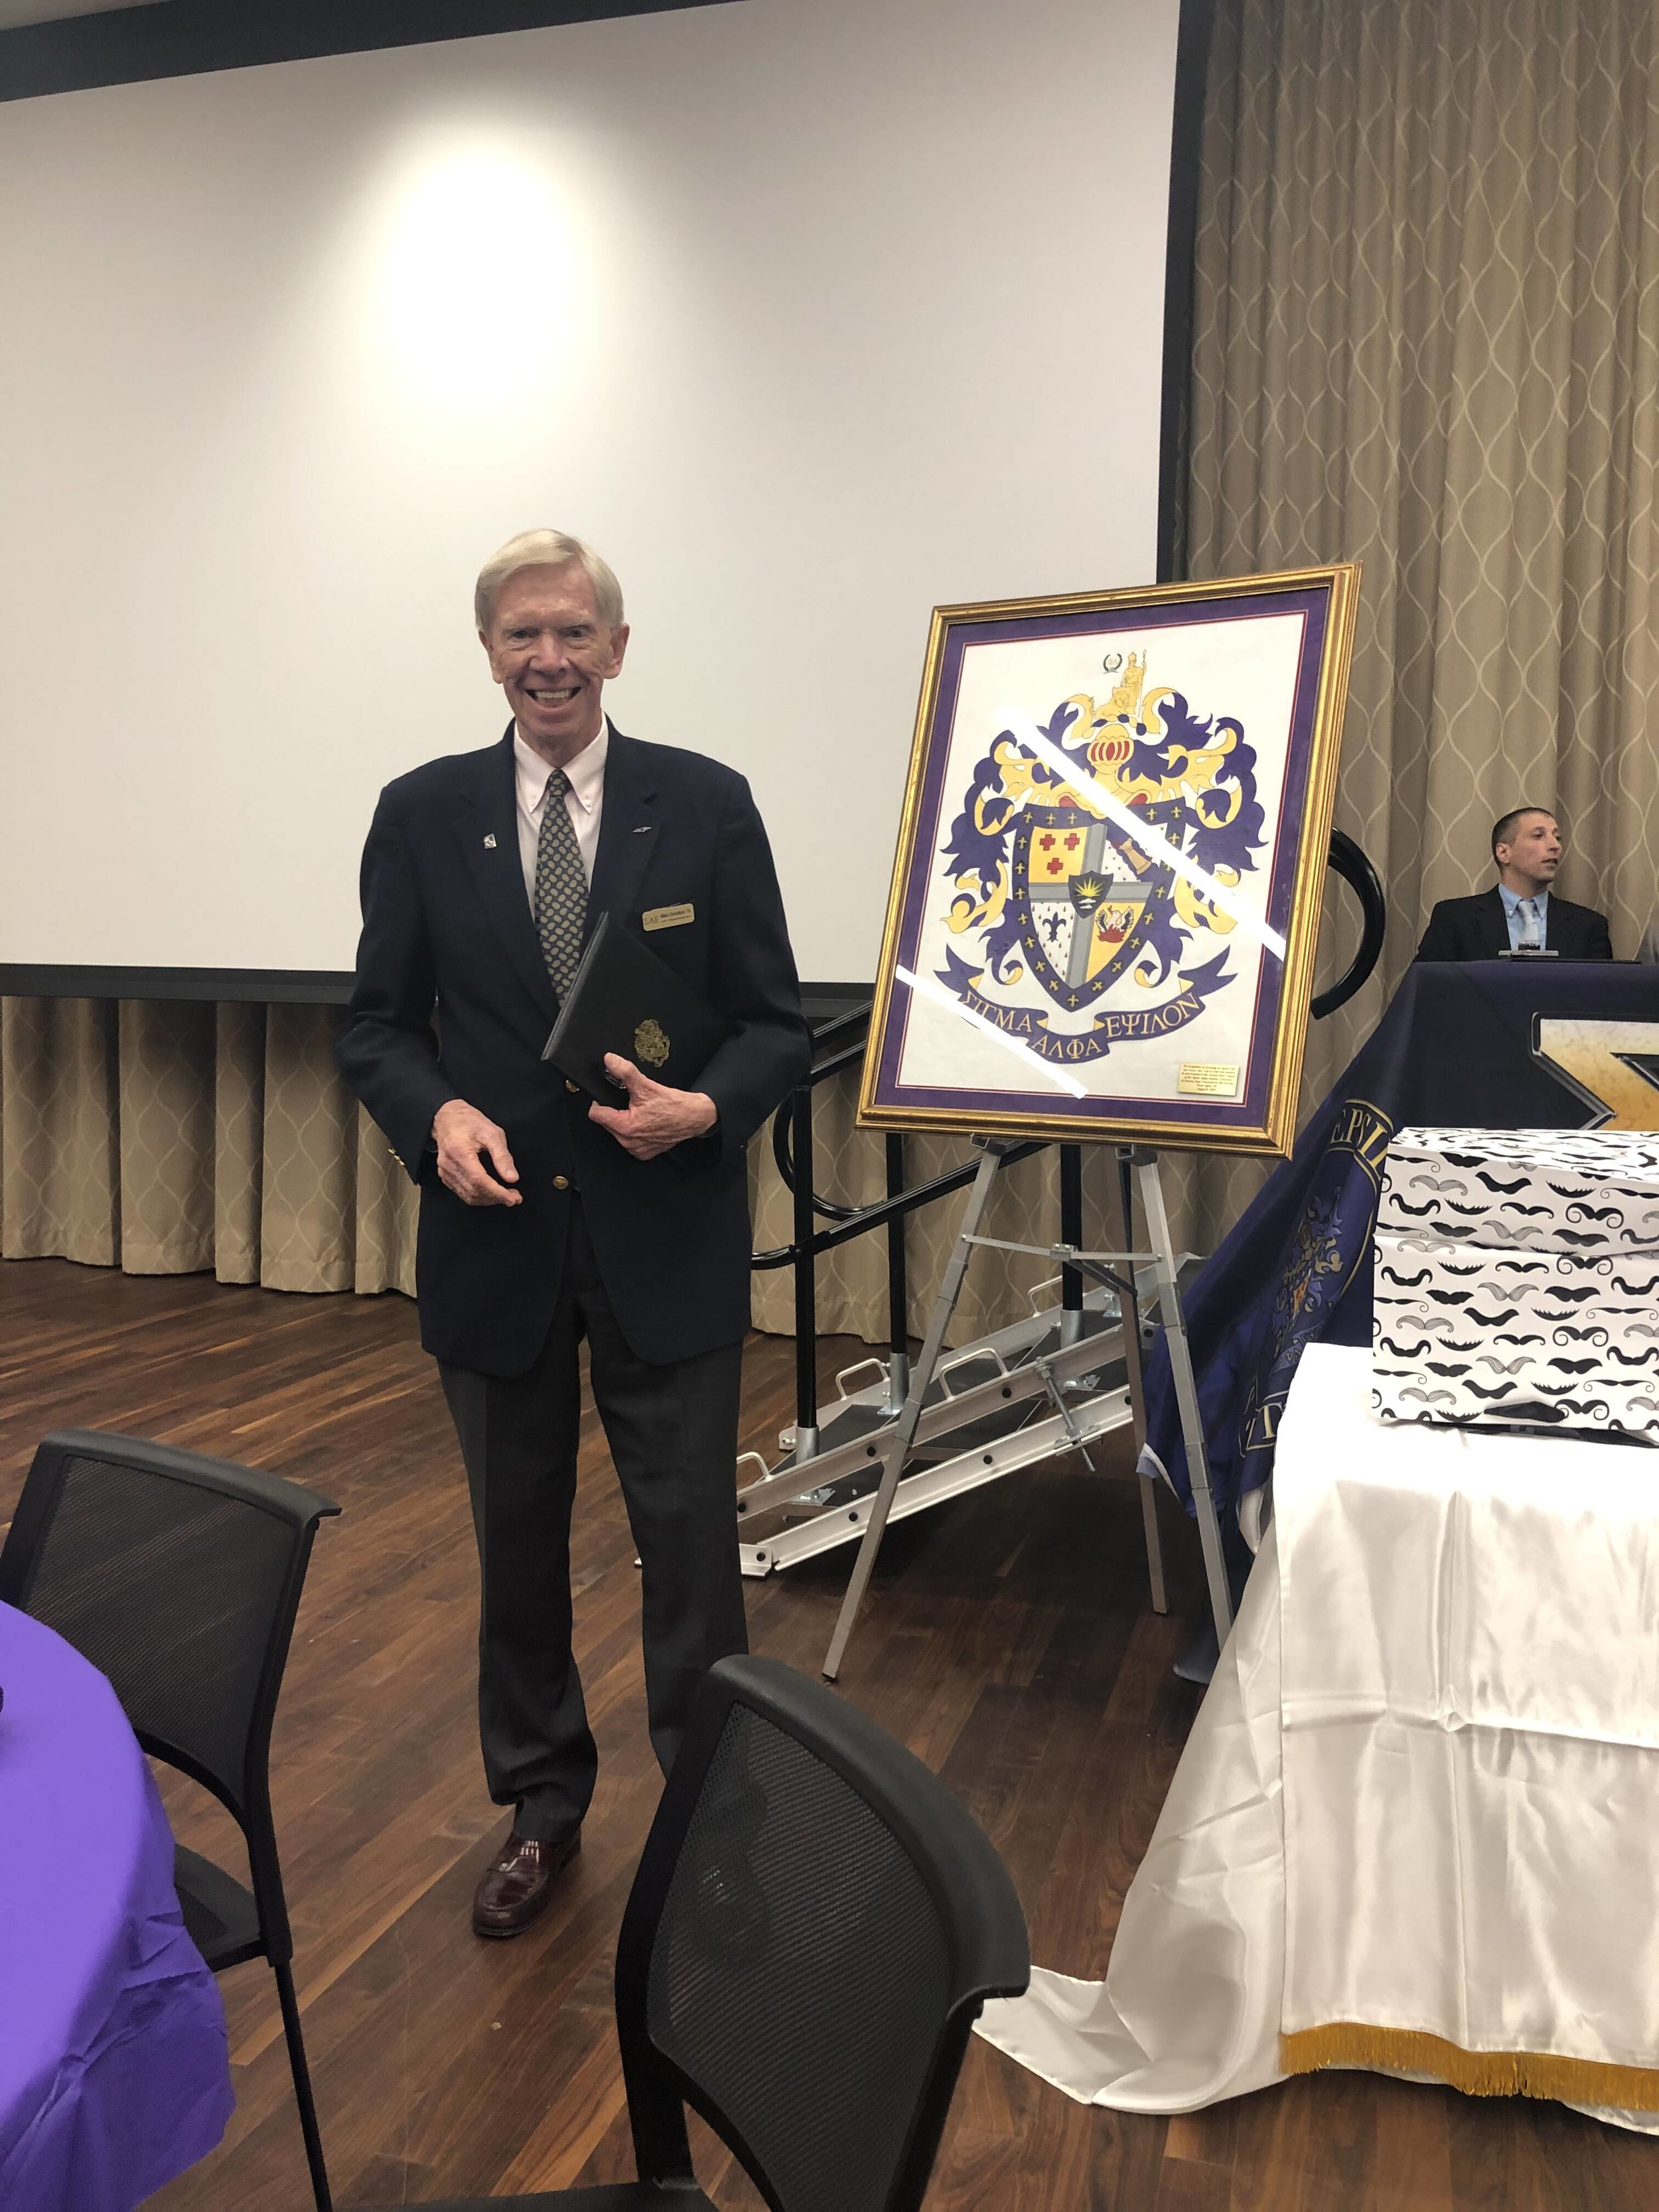 Mike Donahoe, OK Kappa '62 receives the Order of the Lion Award